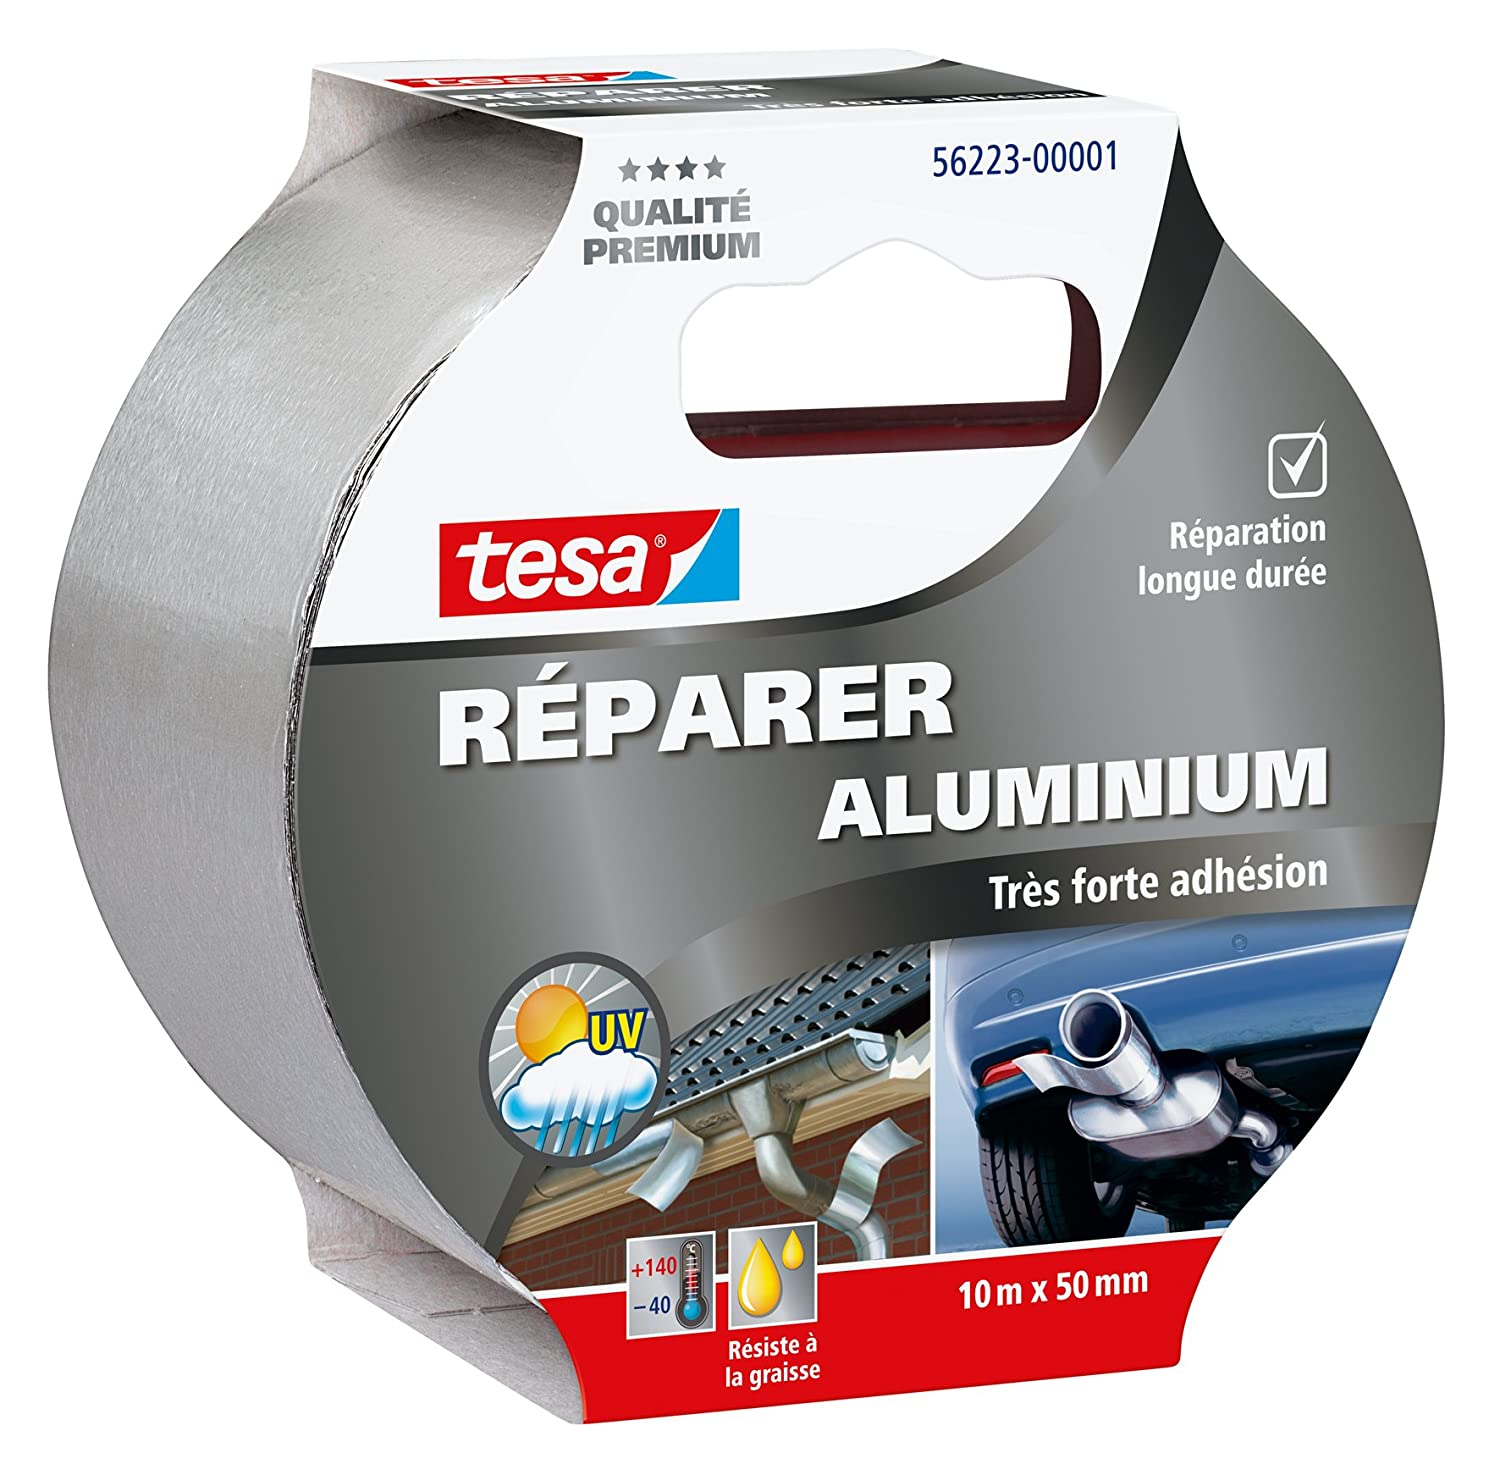 tesa Ré parer Aluminium'Aluminium Repair' 56223-00001-01 Repair Tape Very Strong Adhesion 10 m x 50 mm 4042448131584